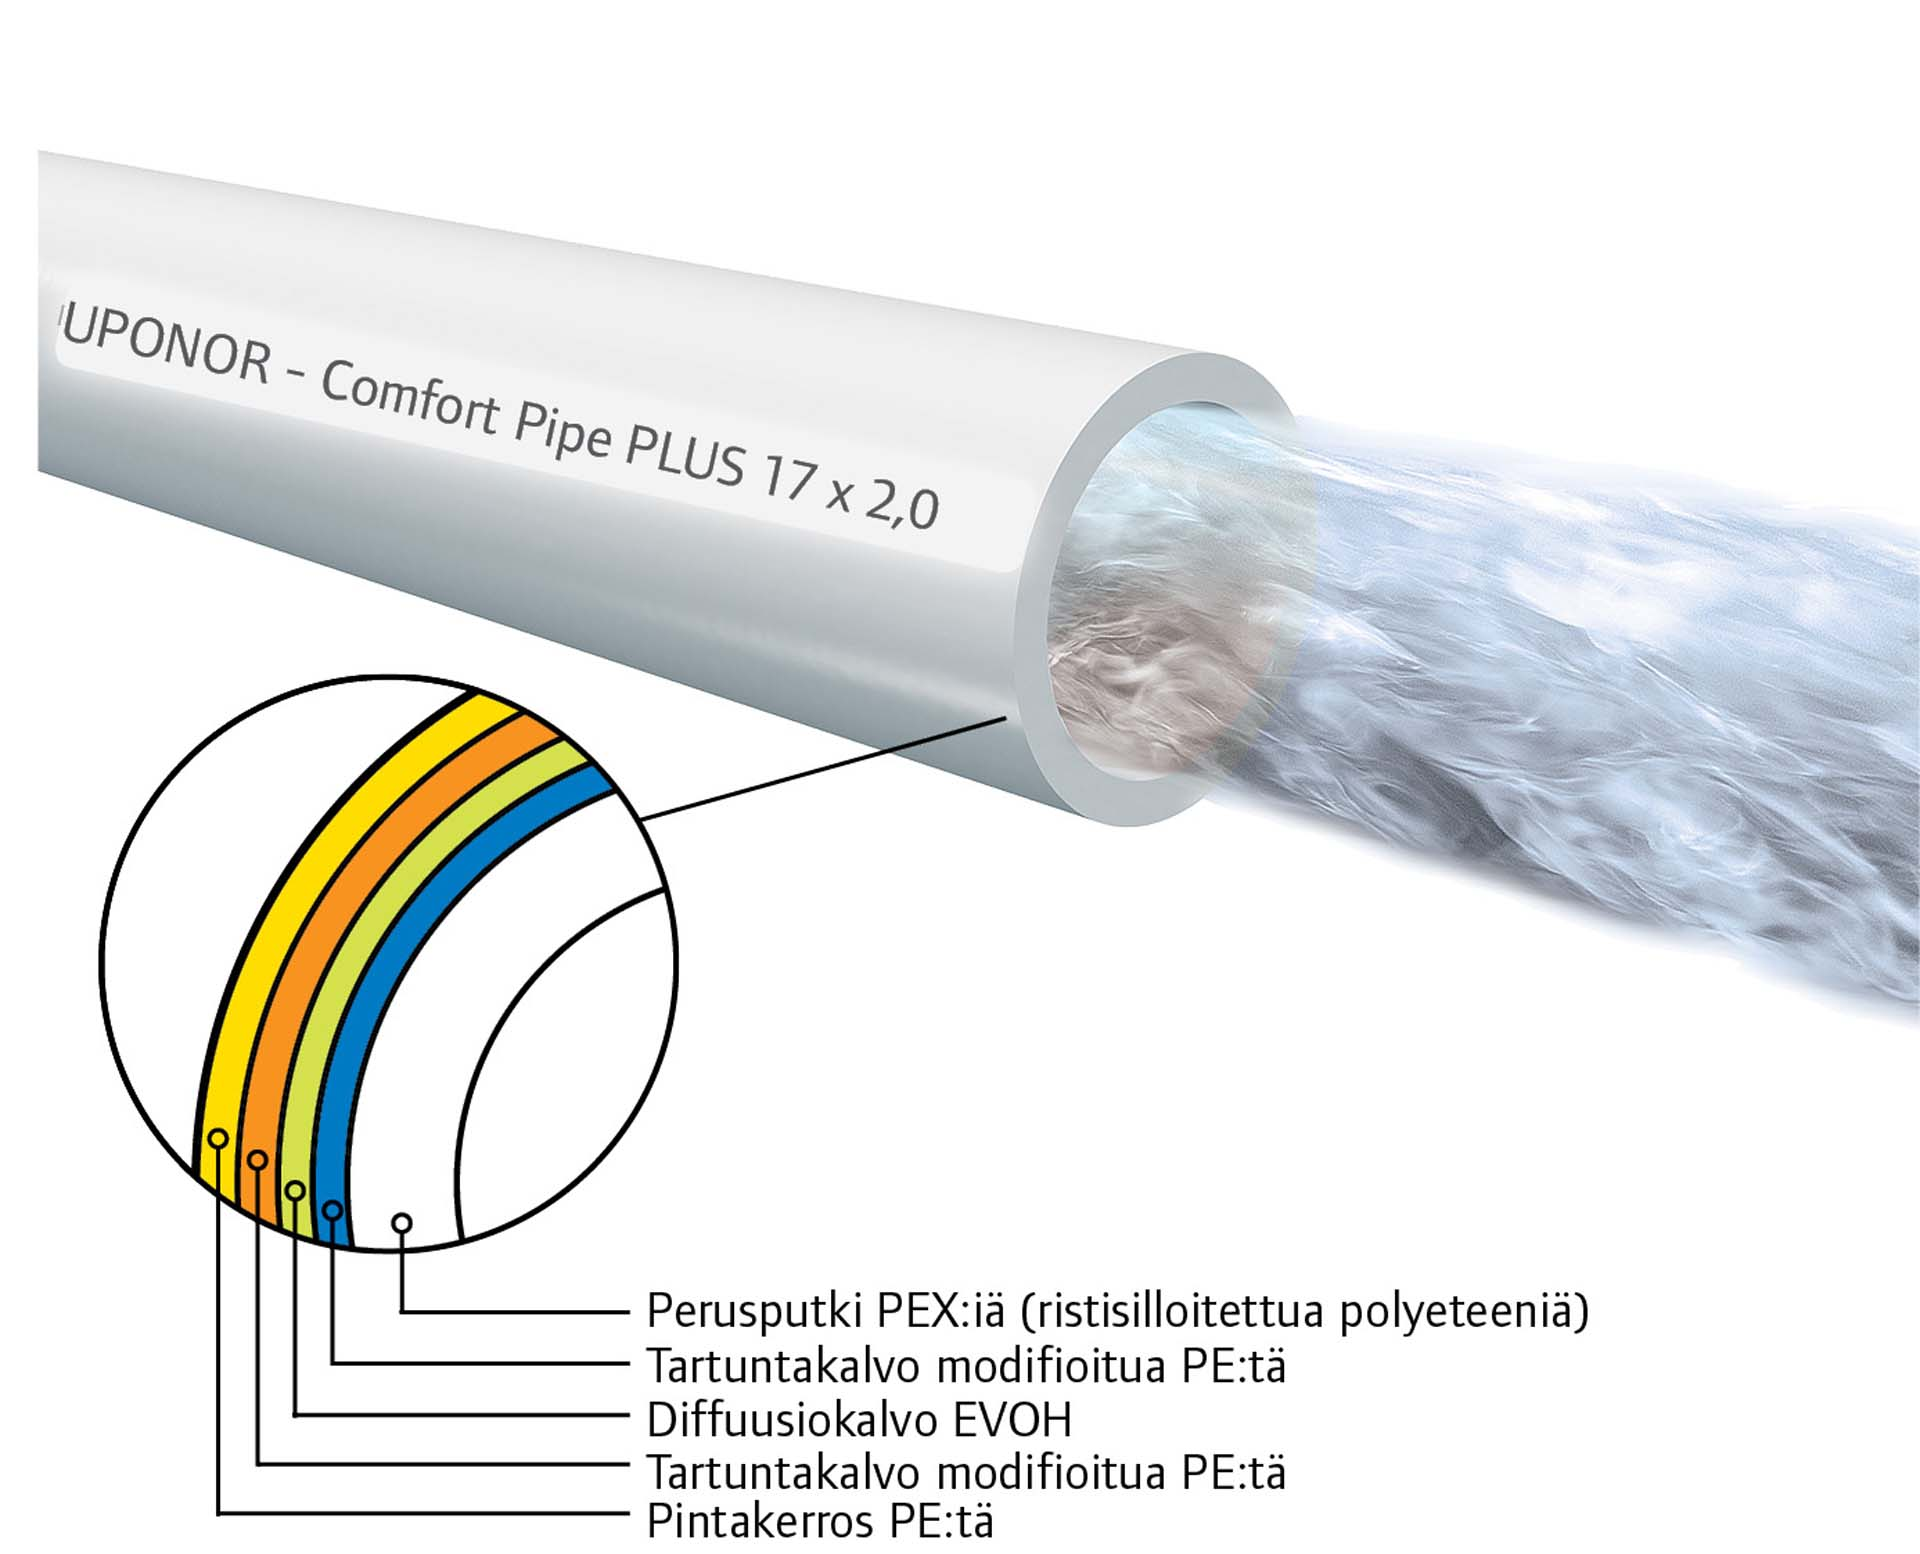 Uponor Comfort Pipe PLUS -putki